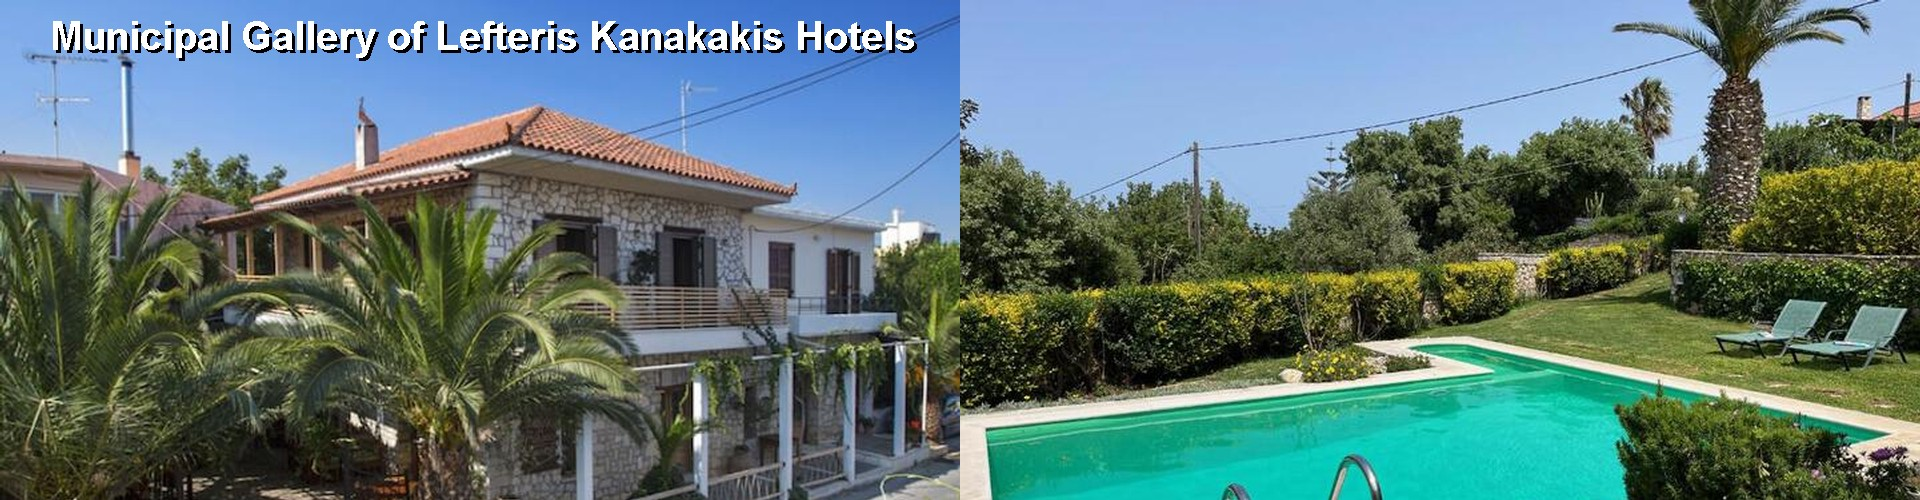 5 Best Hotels near Municipal Gallery of Lefteris Kanakakis